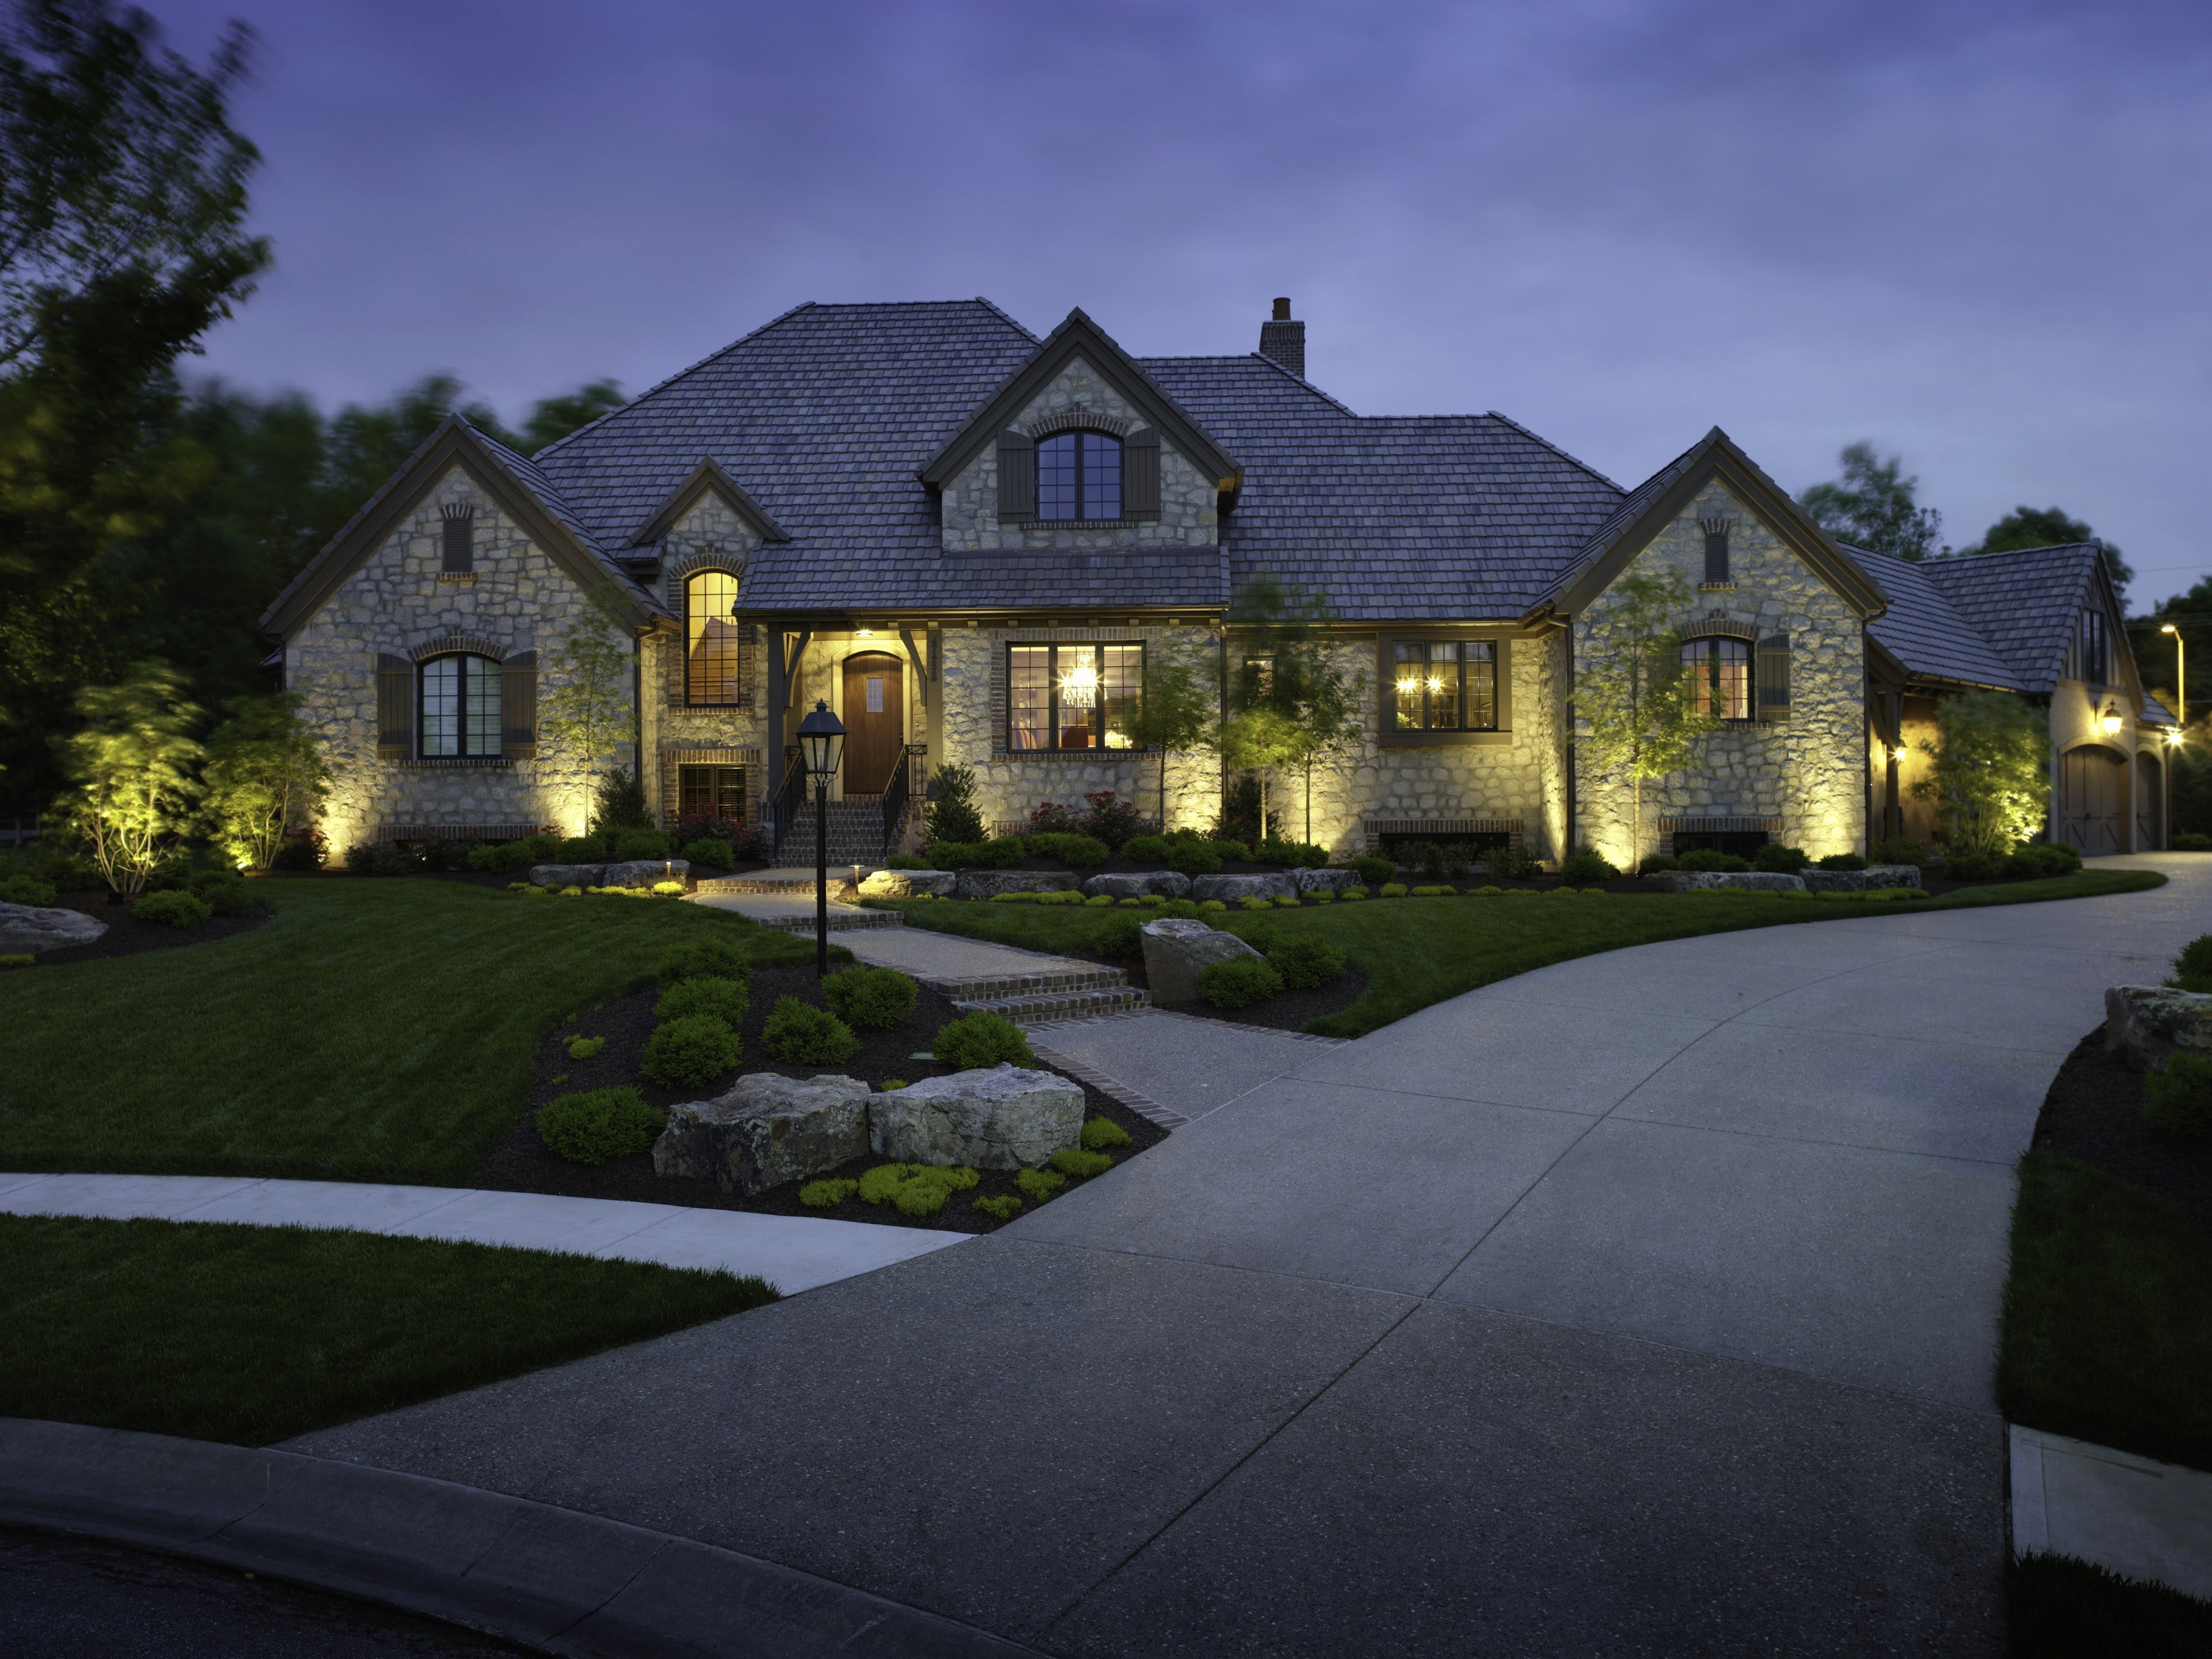 Low Voltage Landscape Lighting Vancouver Electrician Wirechief